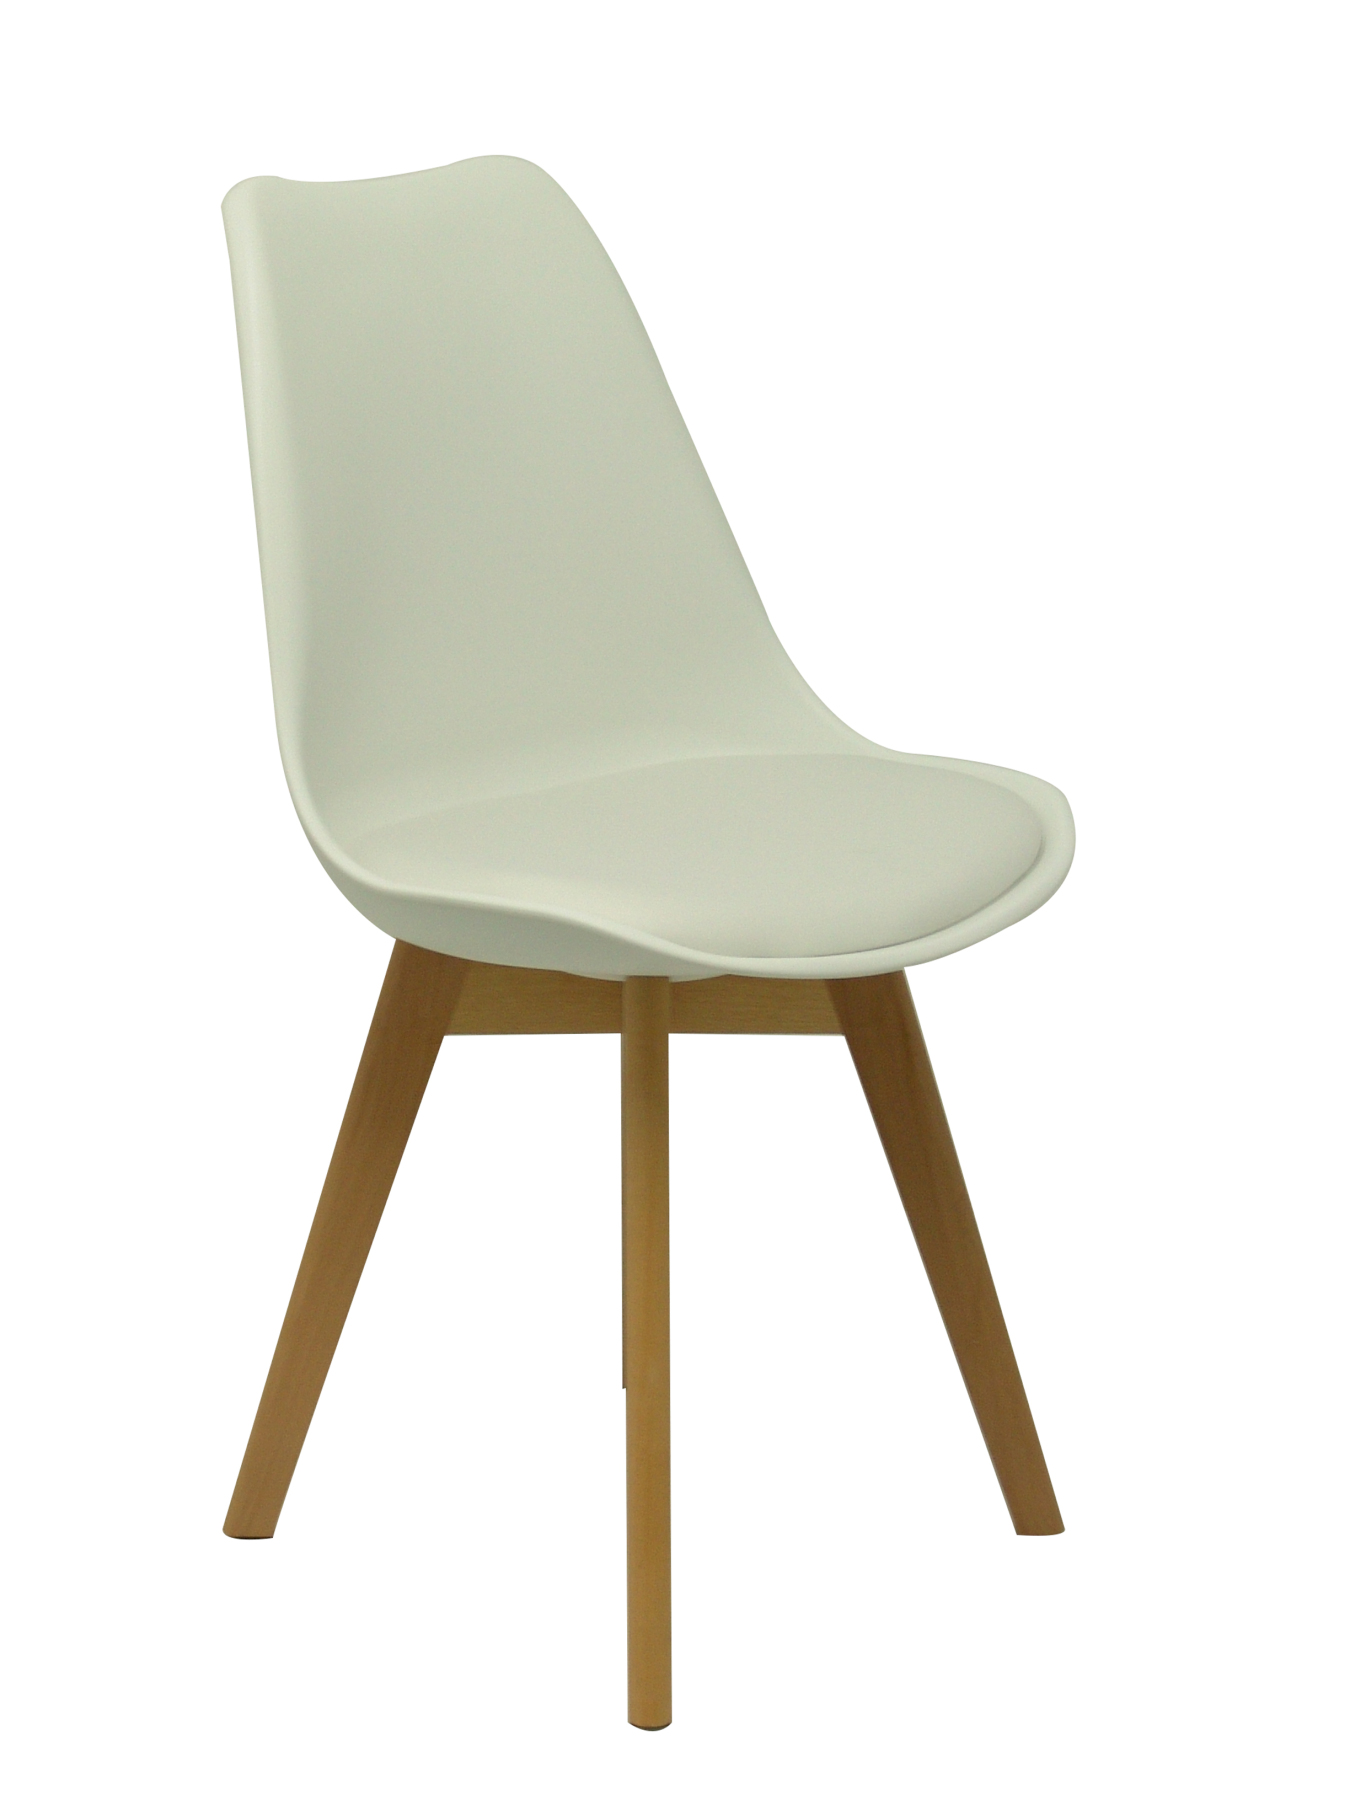 Pack Of 4 Chairs Confident Ergonomic And With Wooden Structure Lifelike Beech Style Tower-Seat And Backrest